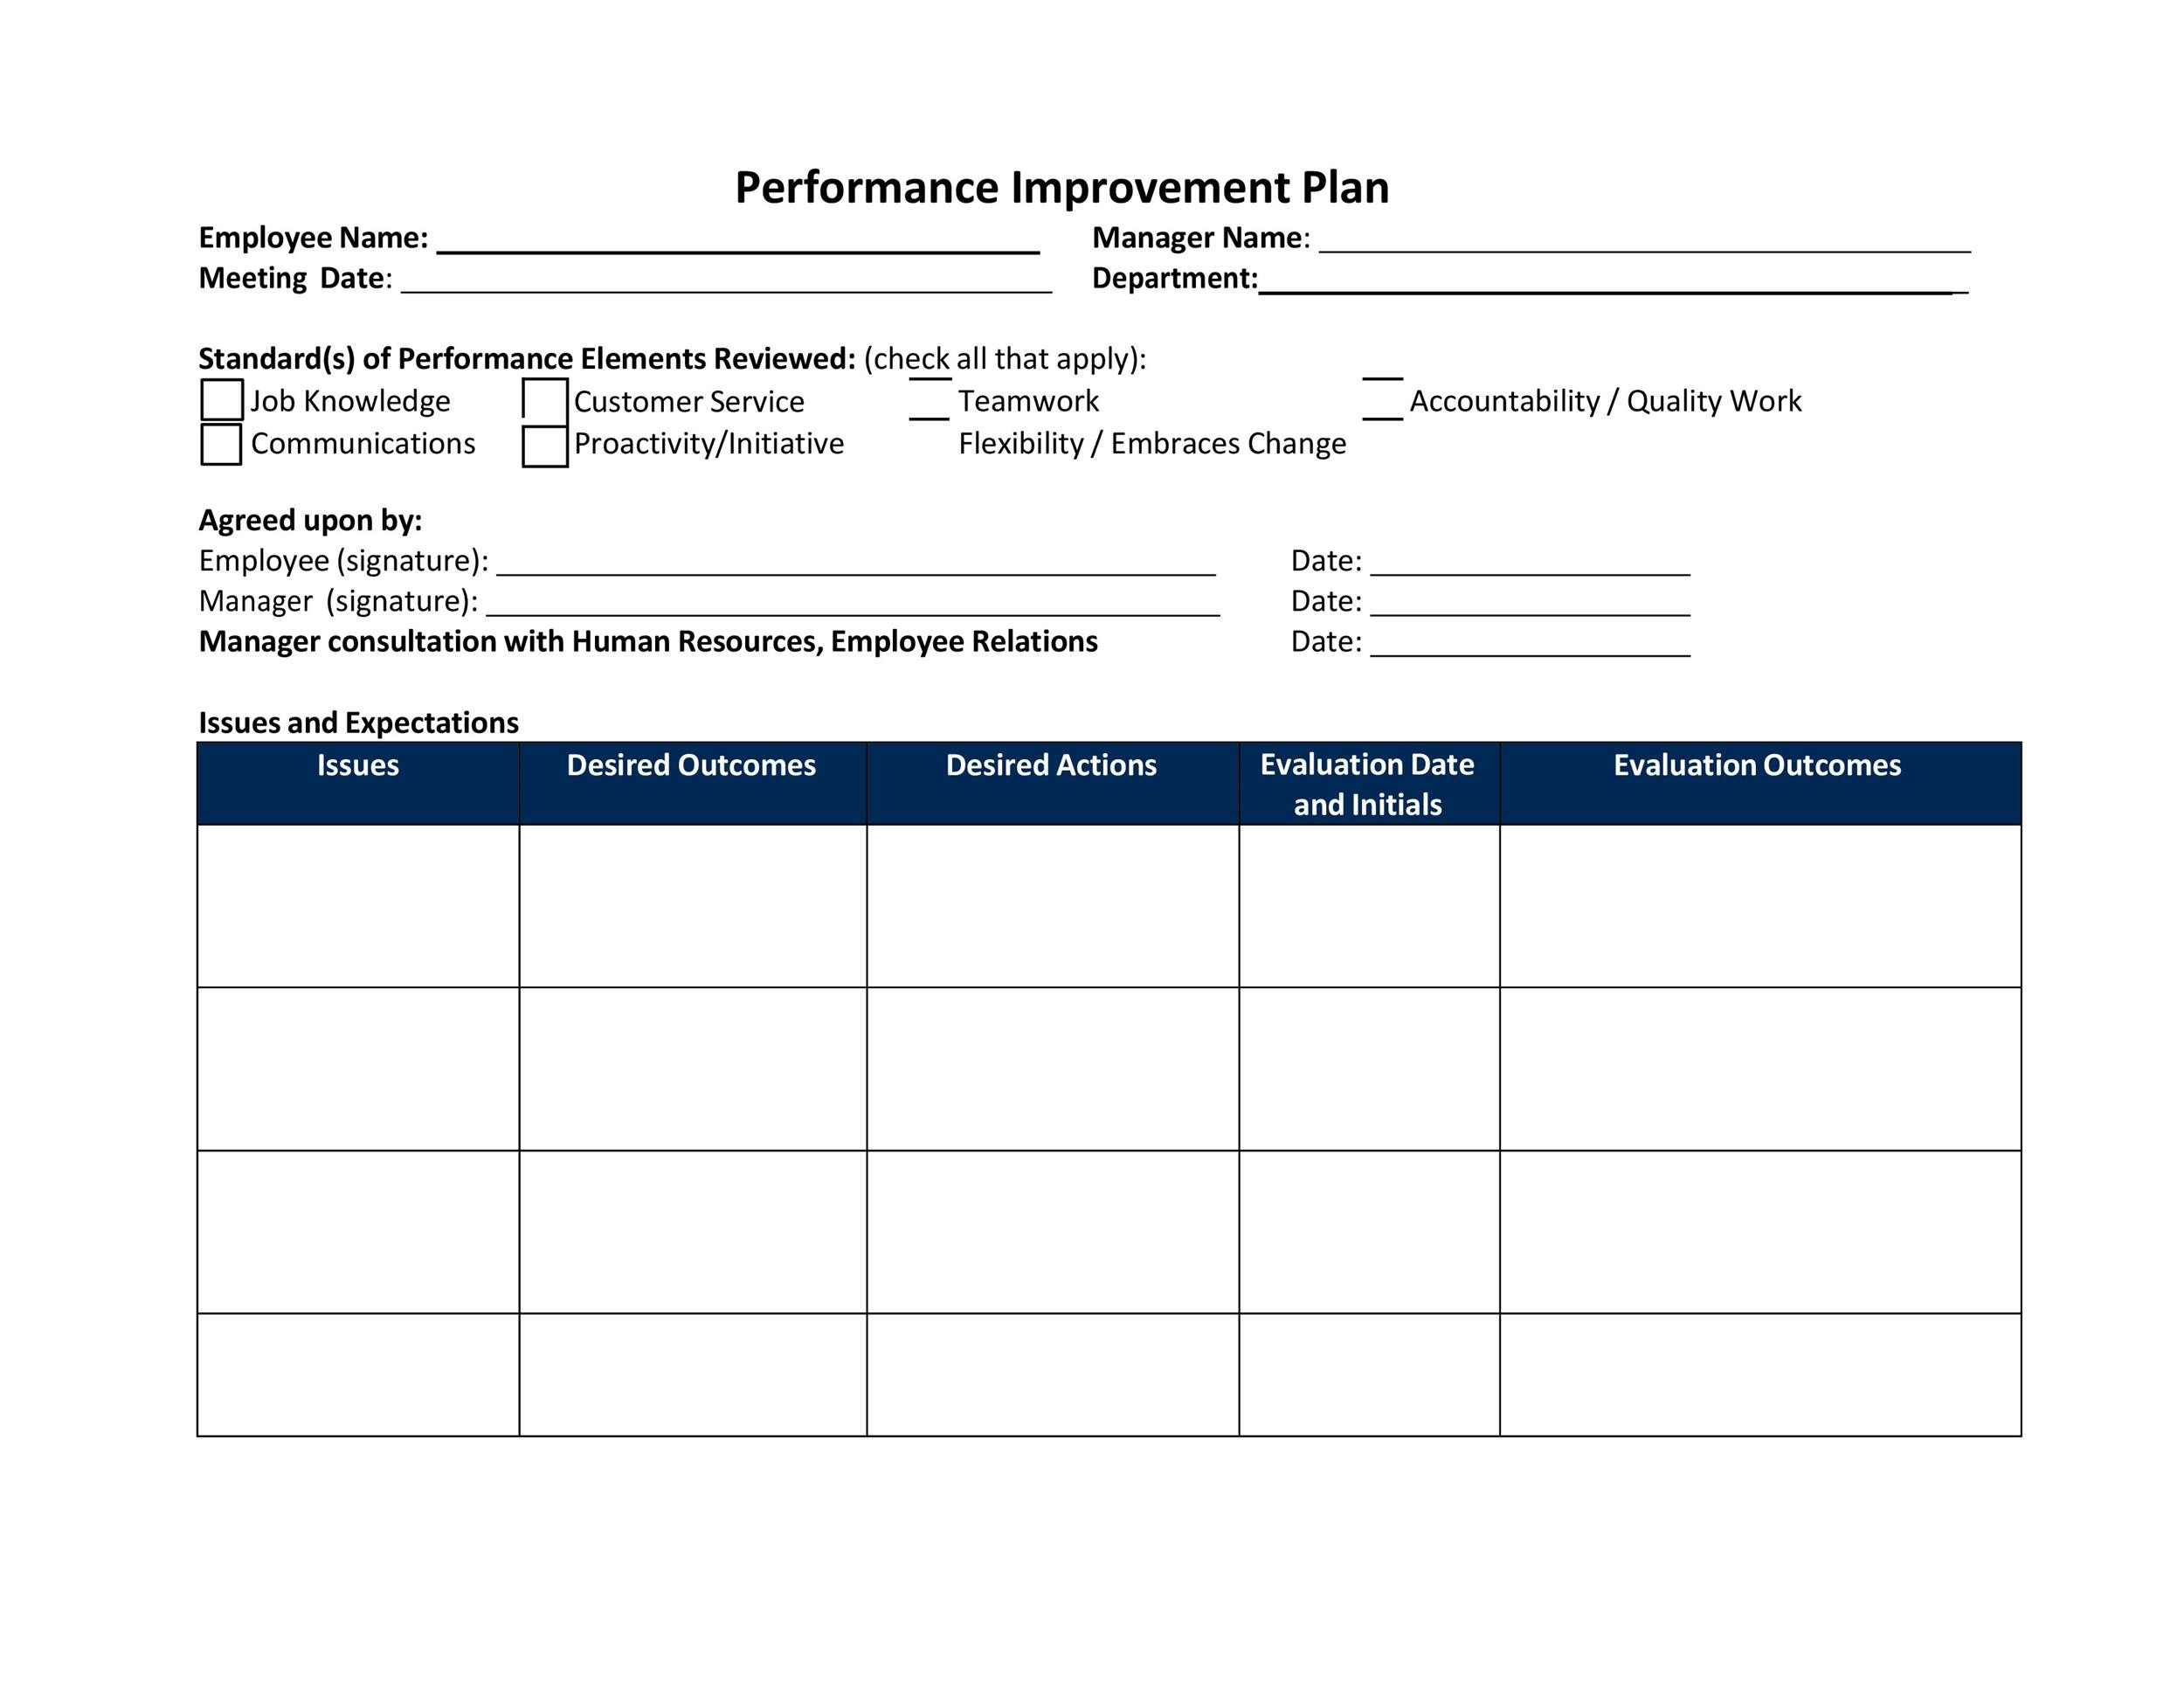 40 performance improvement plan templates examples for Accountable plan template